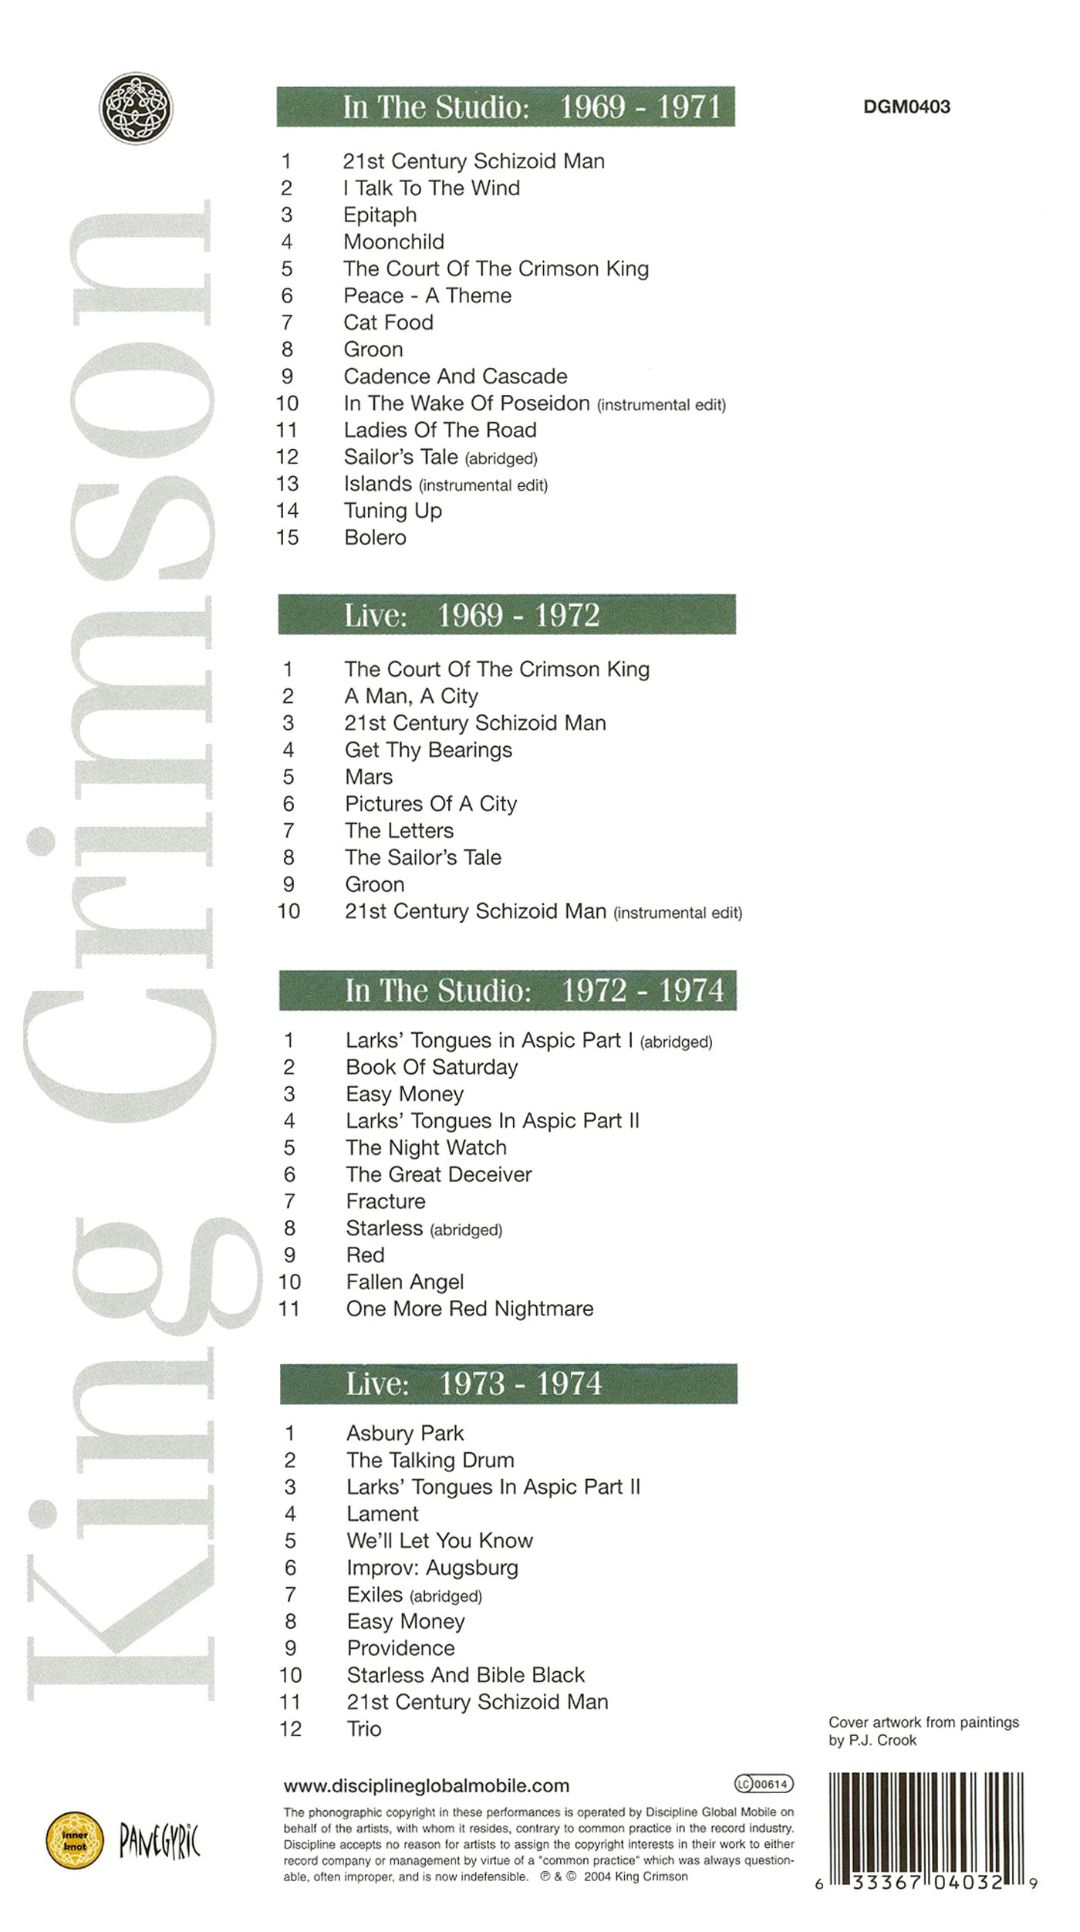 The 21st Century Guide to King Crimson, Vol. 1: 1969-1974